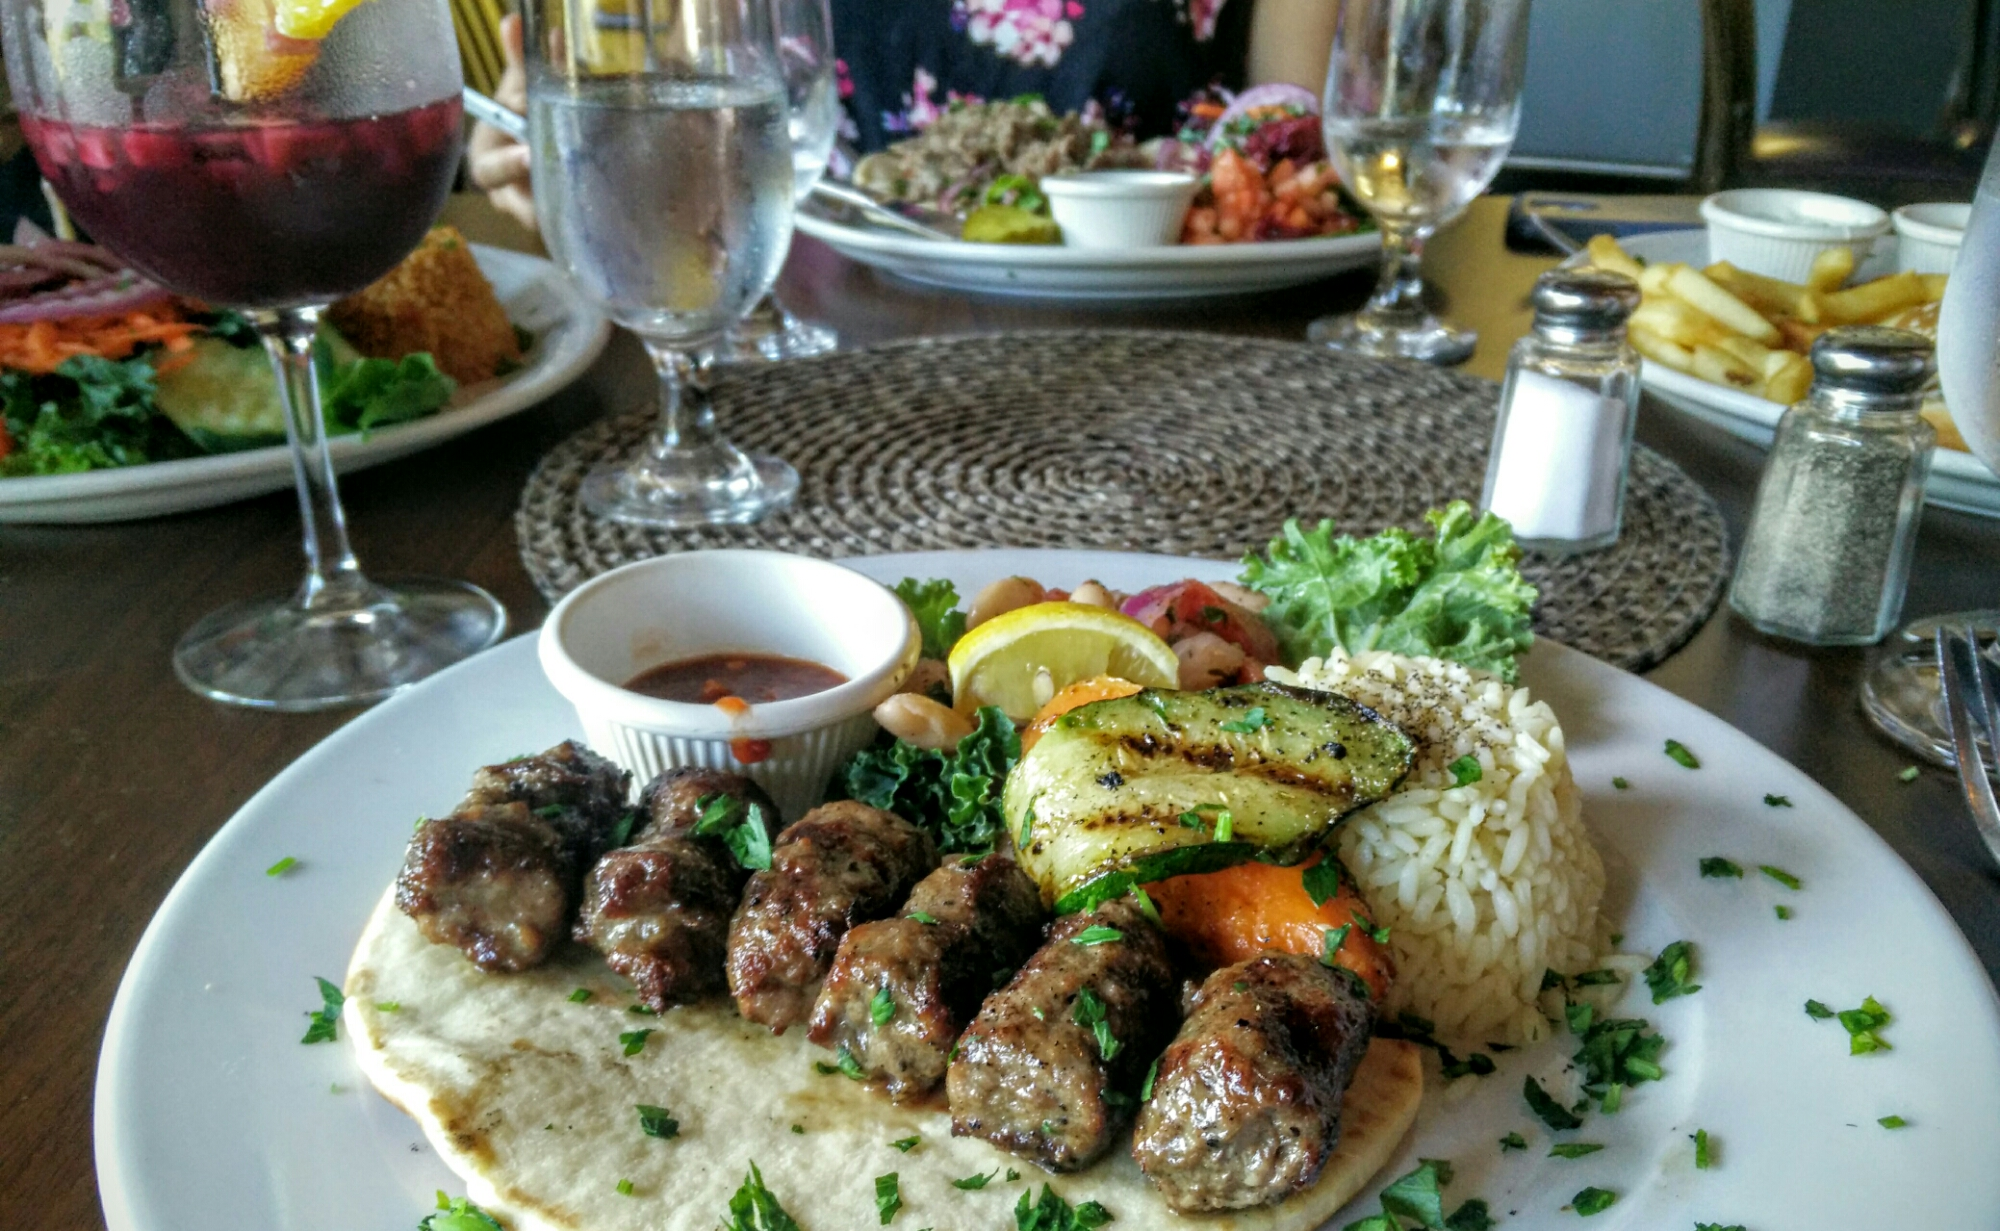 Delicious Spread At Agora Mediterranean Kitchen! #ilovewpb